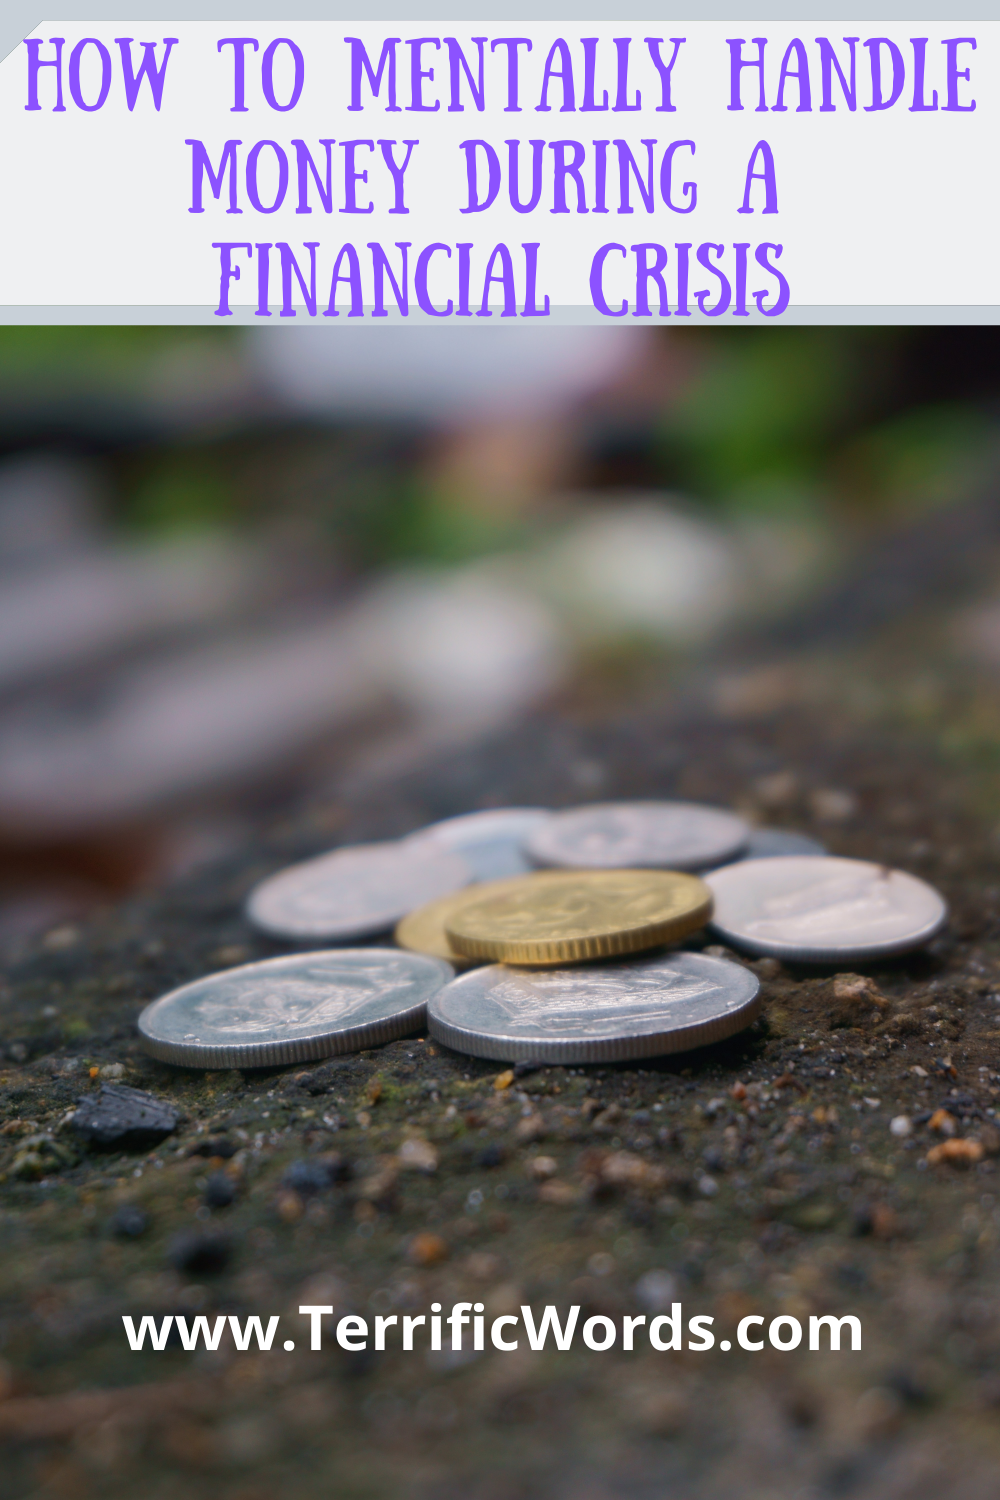 How to Mentally Handle Money During a Financial Crisis